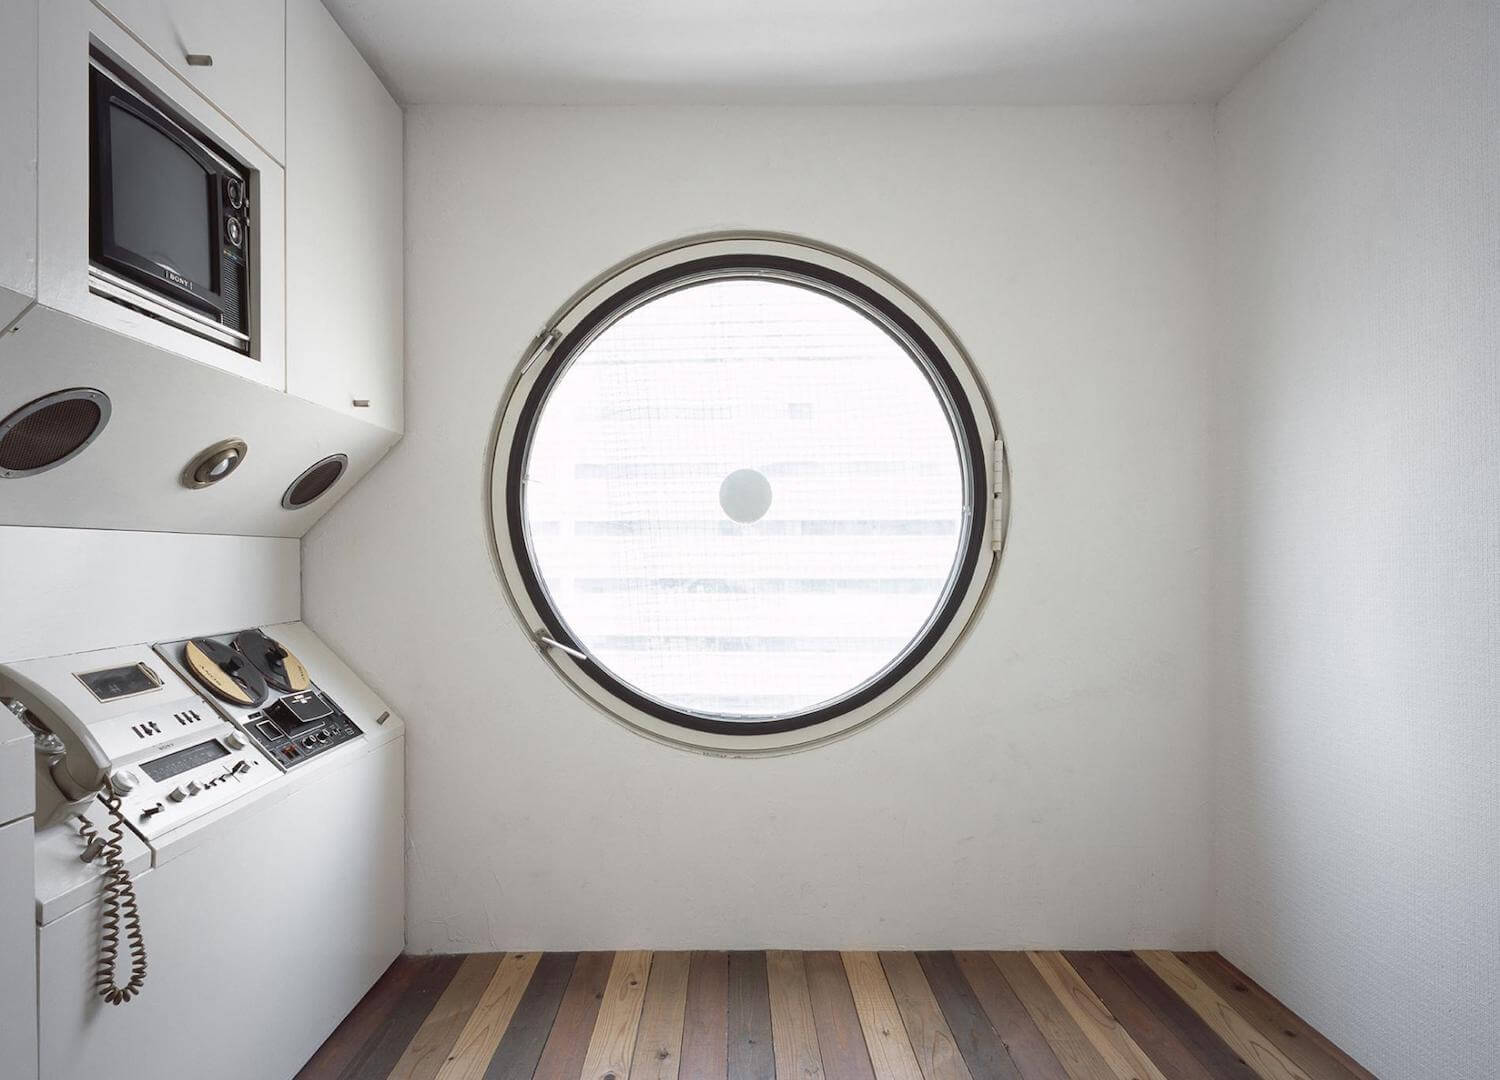 est living a japanese story travis walton Nakagin Capsule Tower Tokyo 1